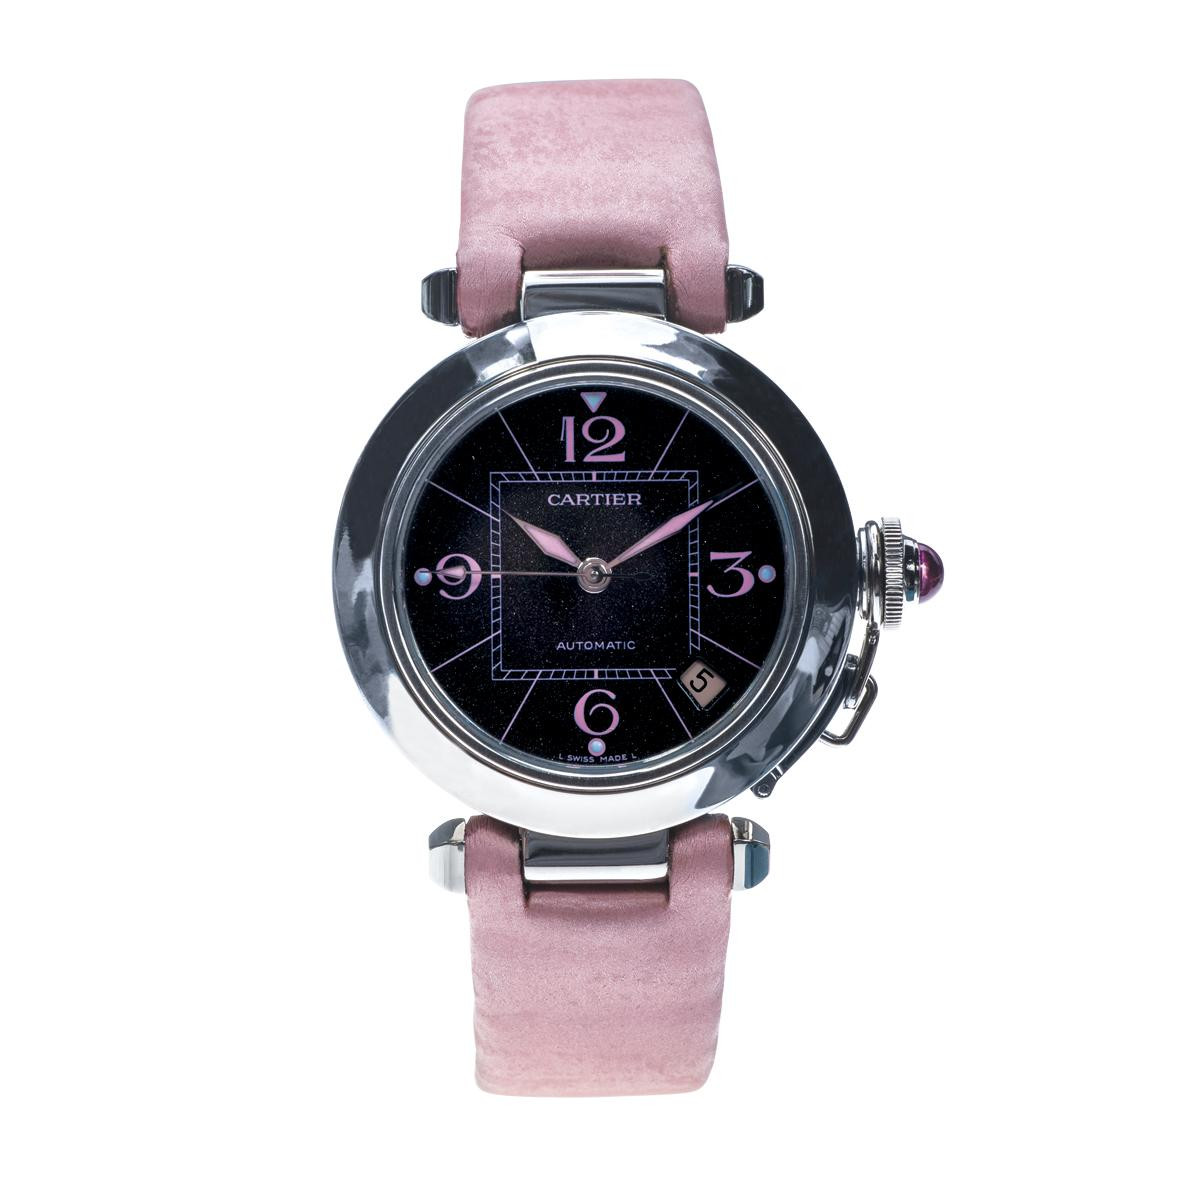 pre owned 35mm pink cartier pasha